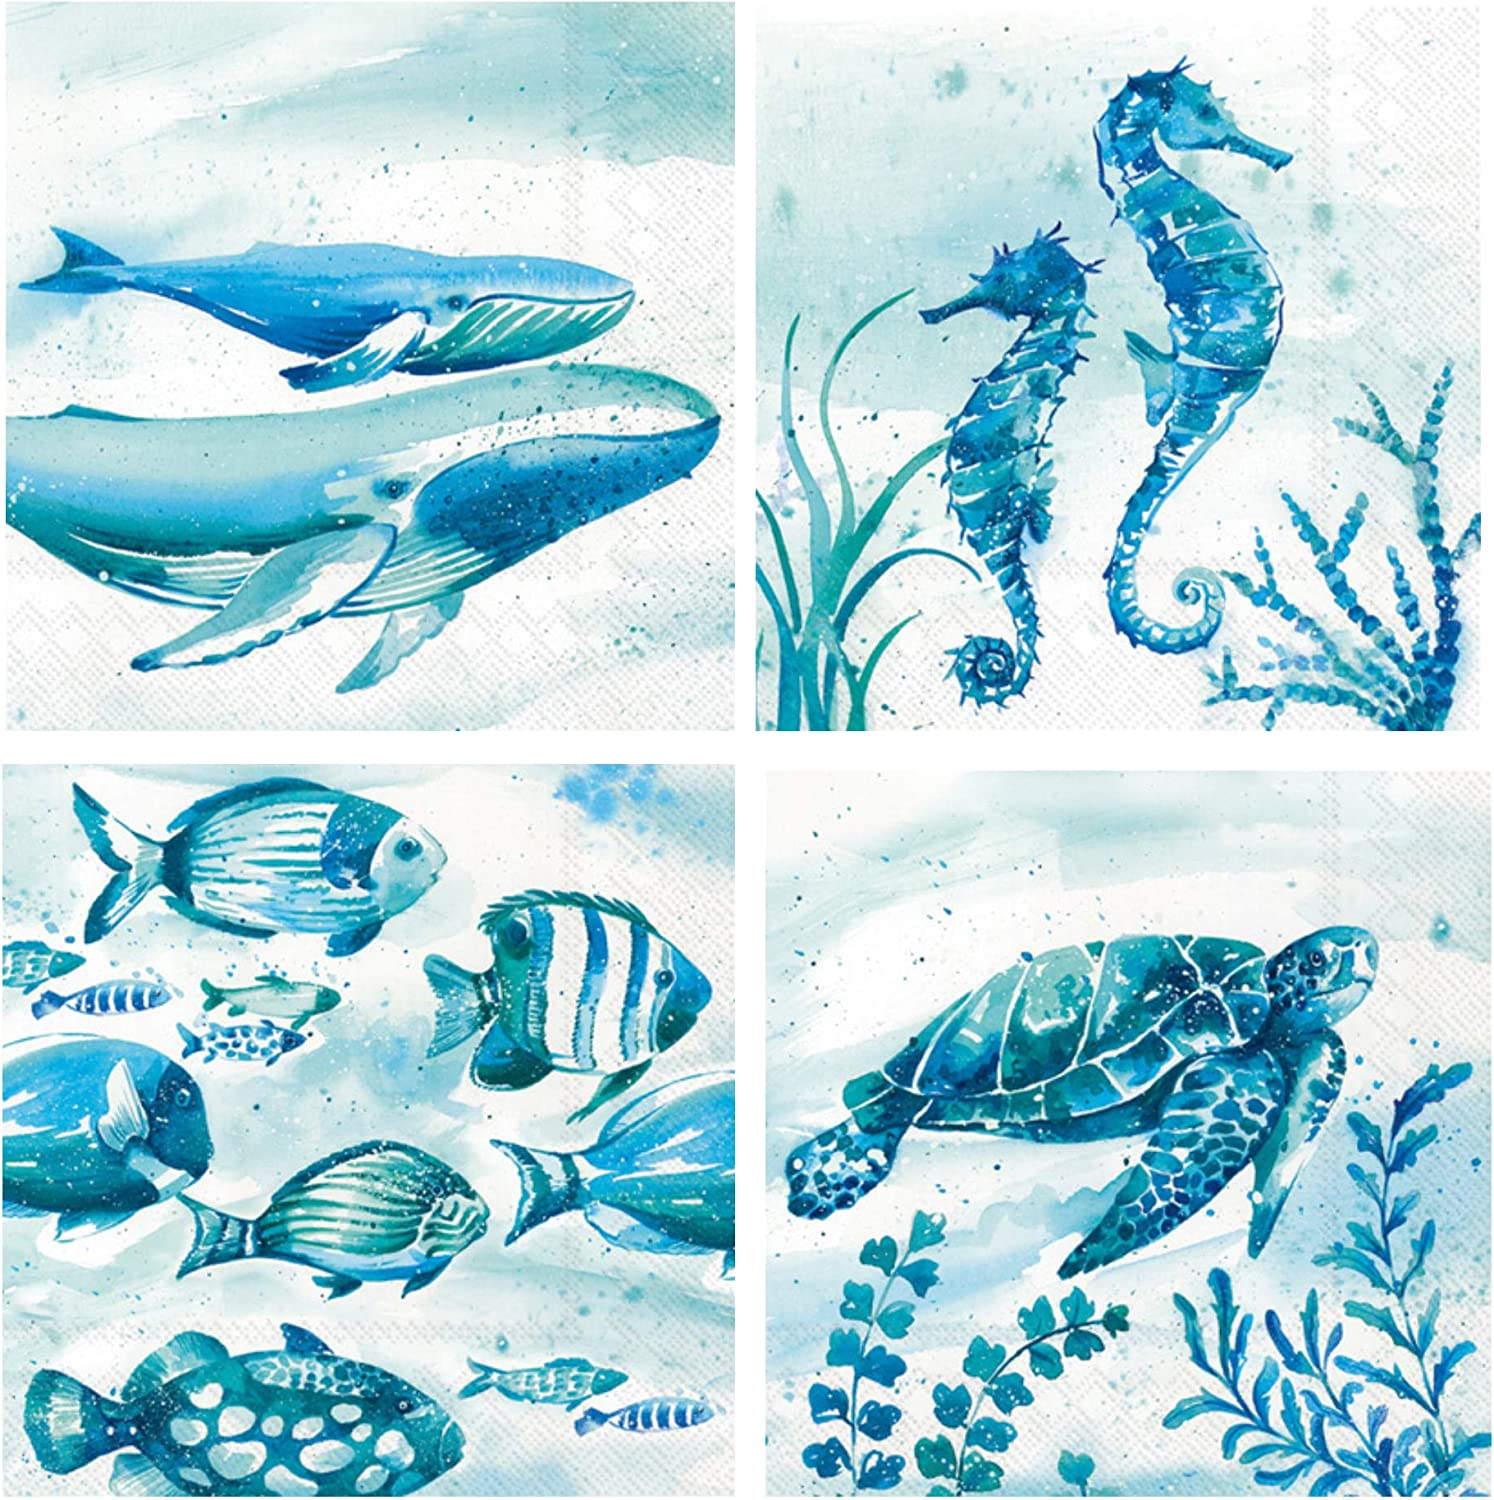 Sea Life Cocktail Napkins Variety Pack | Bundle Includes 80 Total Paper Beverage Napkins | 4 Aquaworld Designs | Whale, WaterTurtle, Fish, Sea Horse